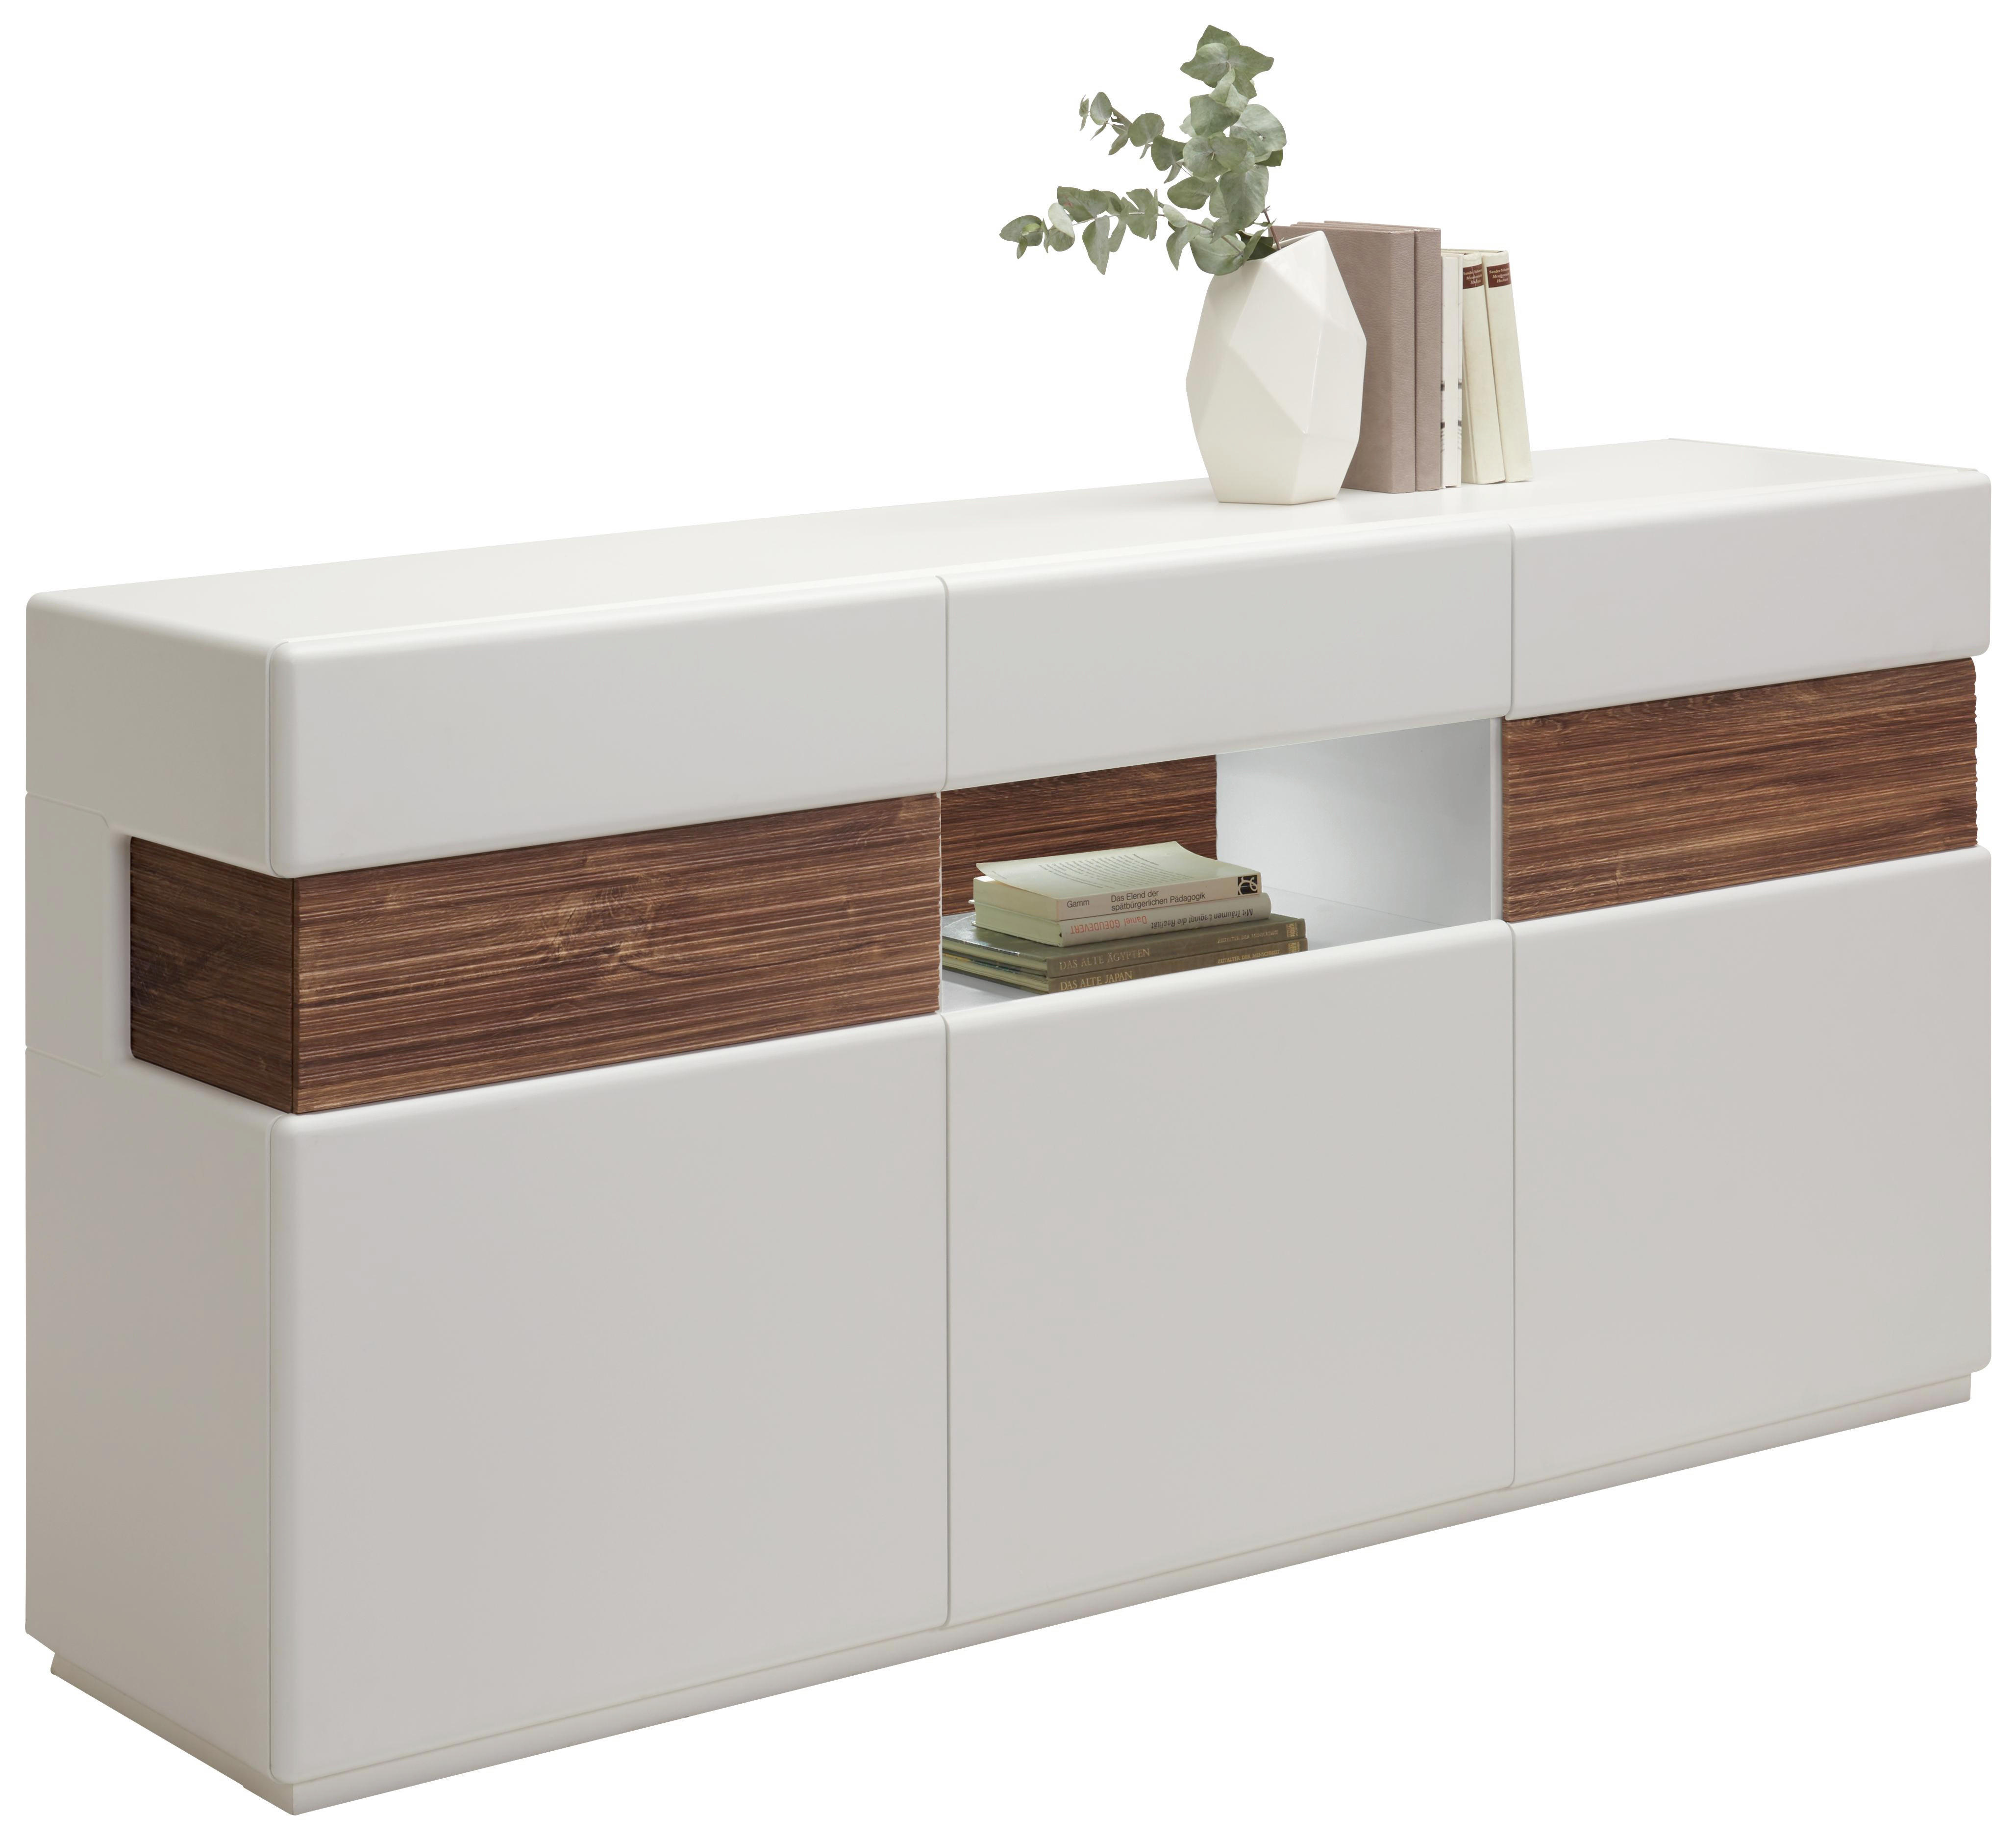 Sideboard Kche Wei Beautiful Beautiful Kche Wei Holz Modern Amazing